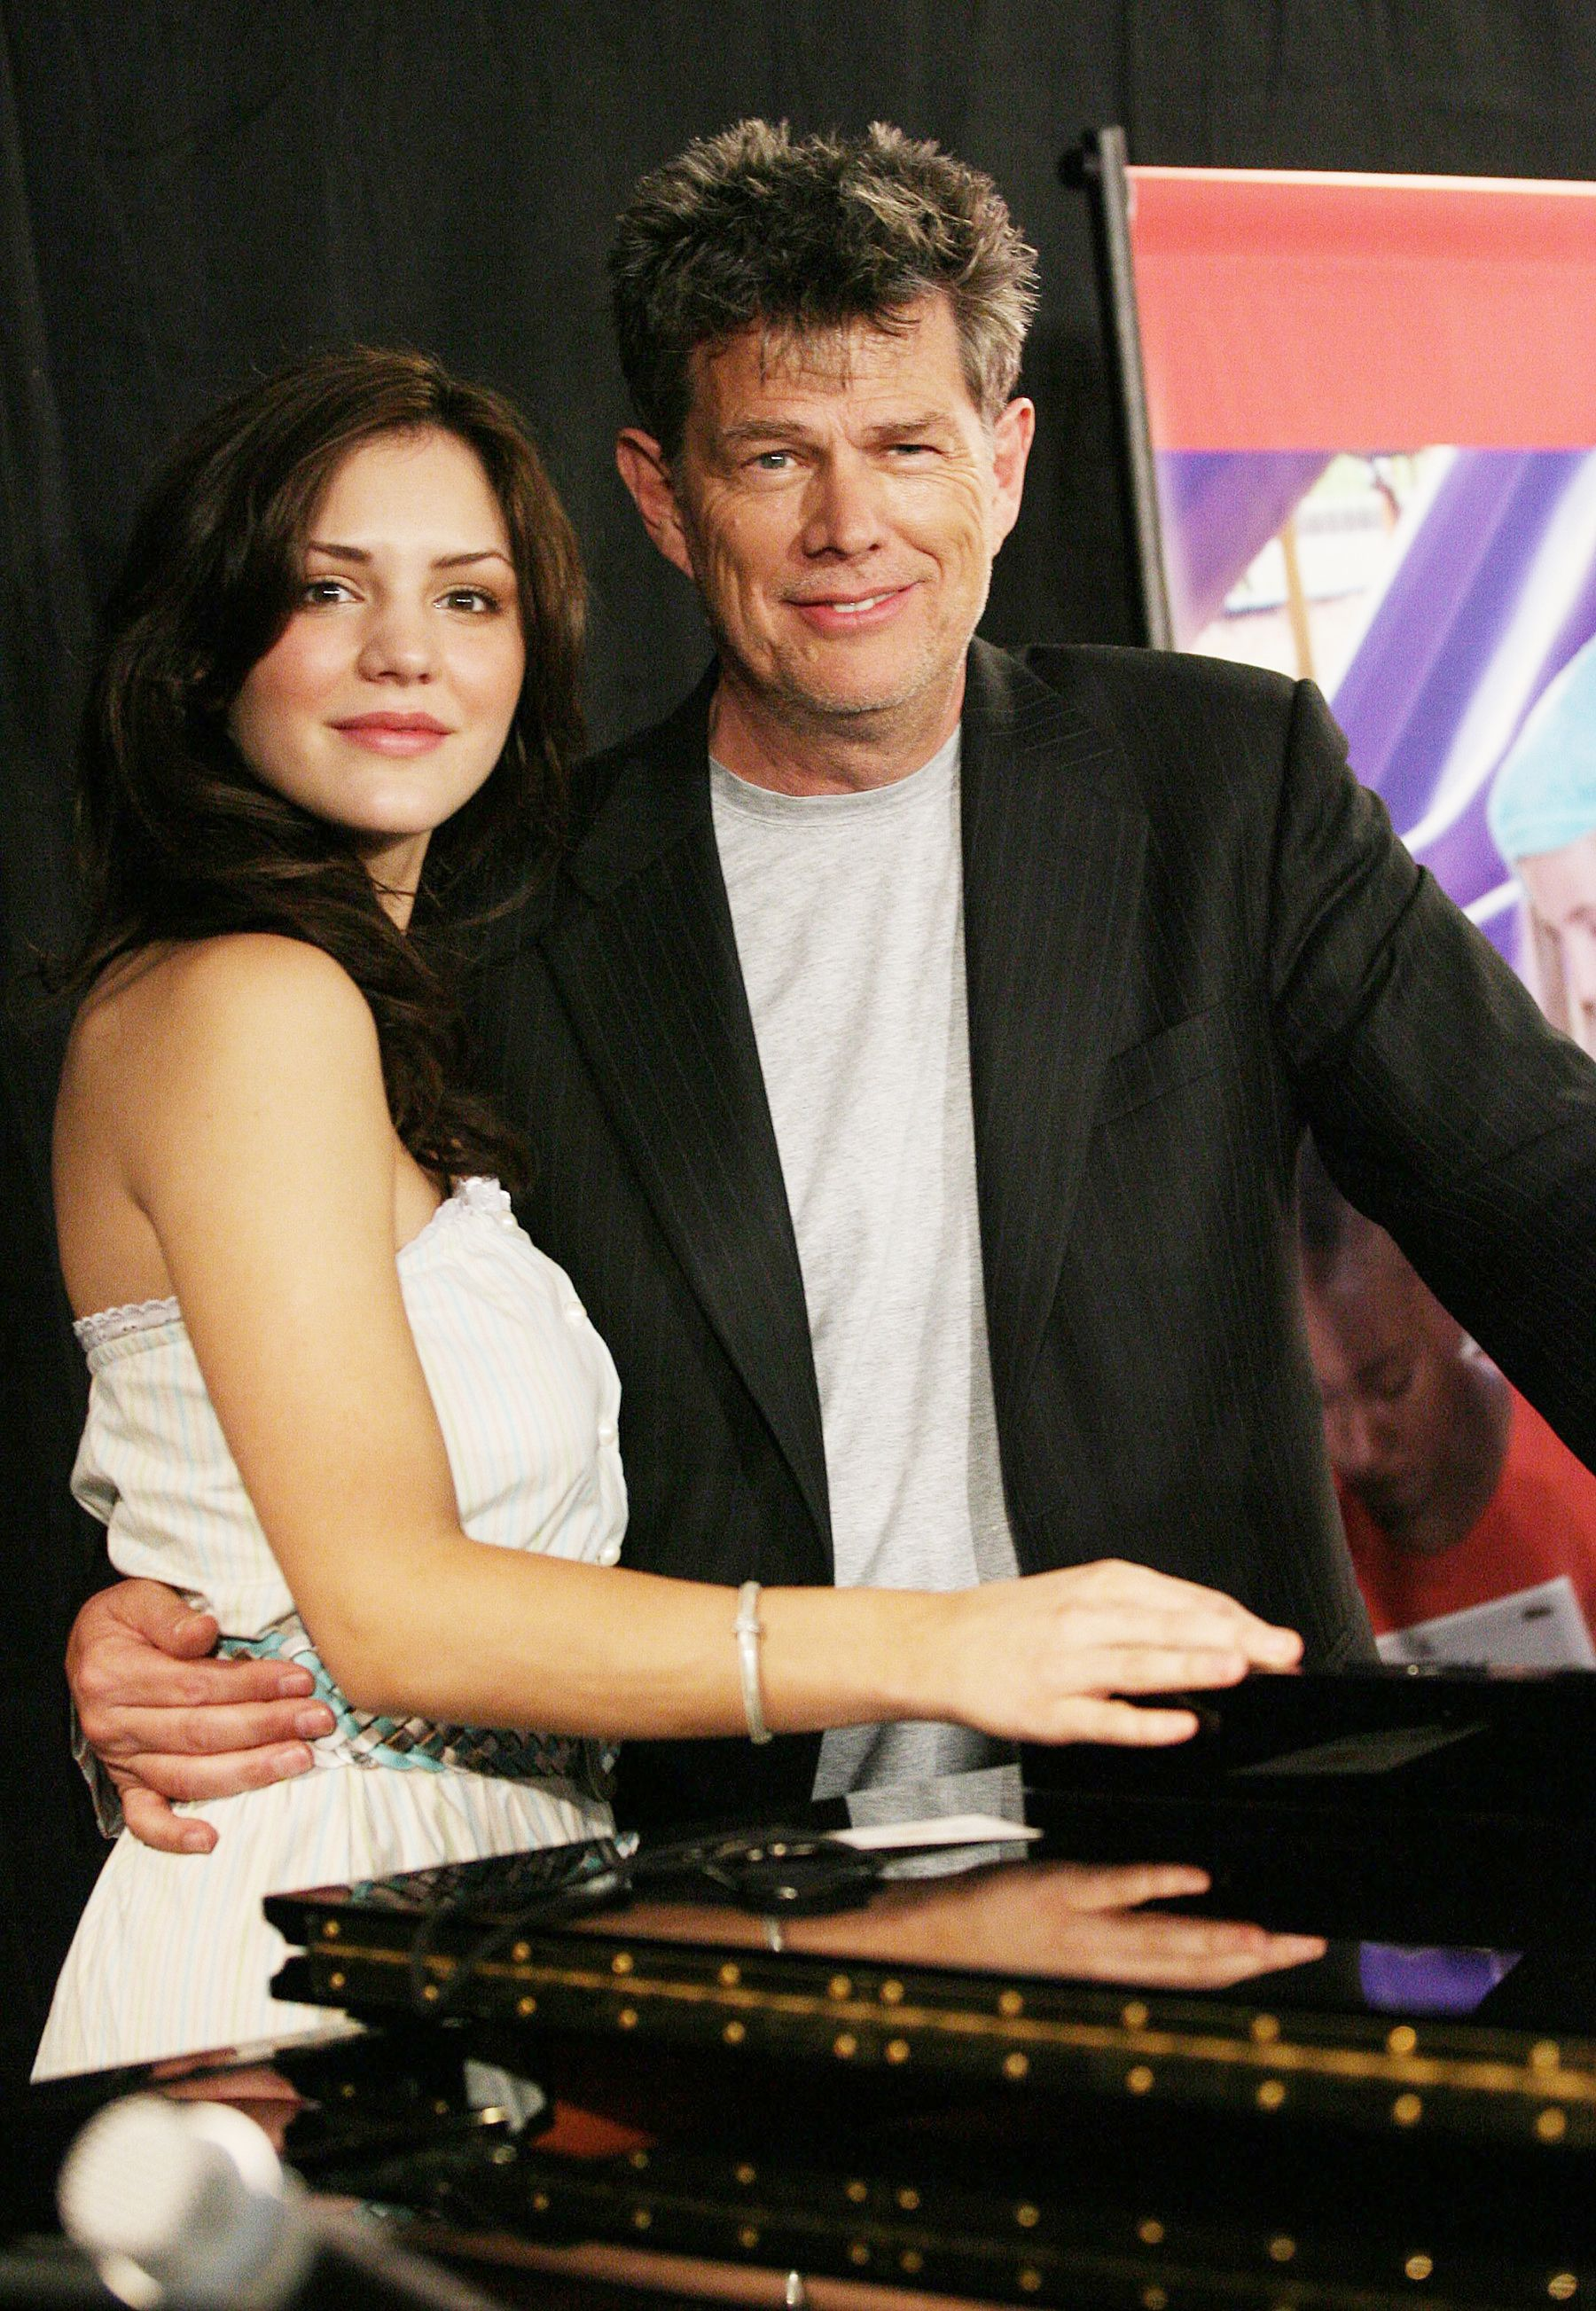 David Foster First Met Katharine Mcphee In 2006 Predicted She Would Have A Great Great Future Katharine Mcphee The Fosters American Idol